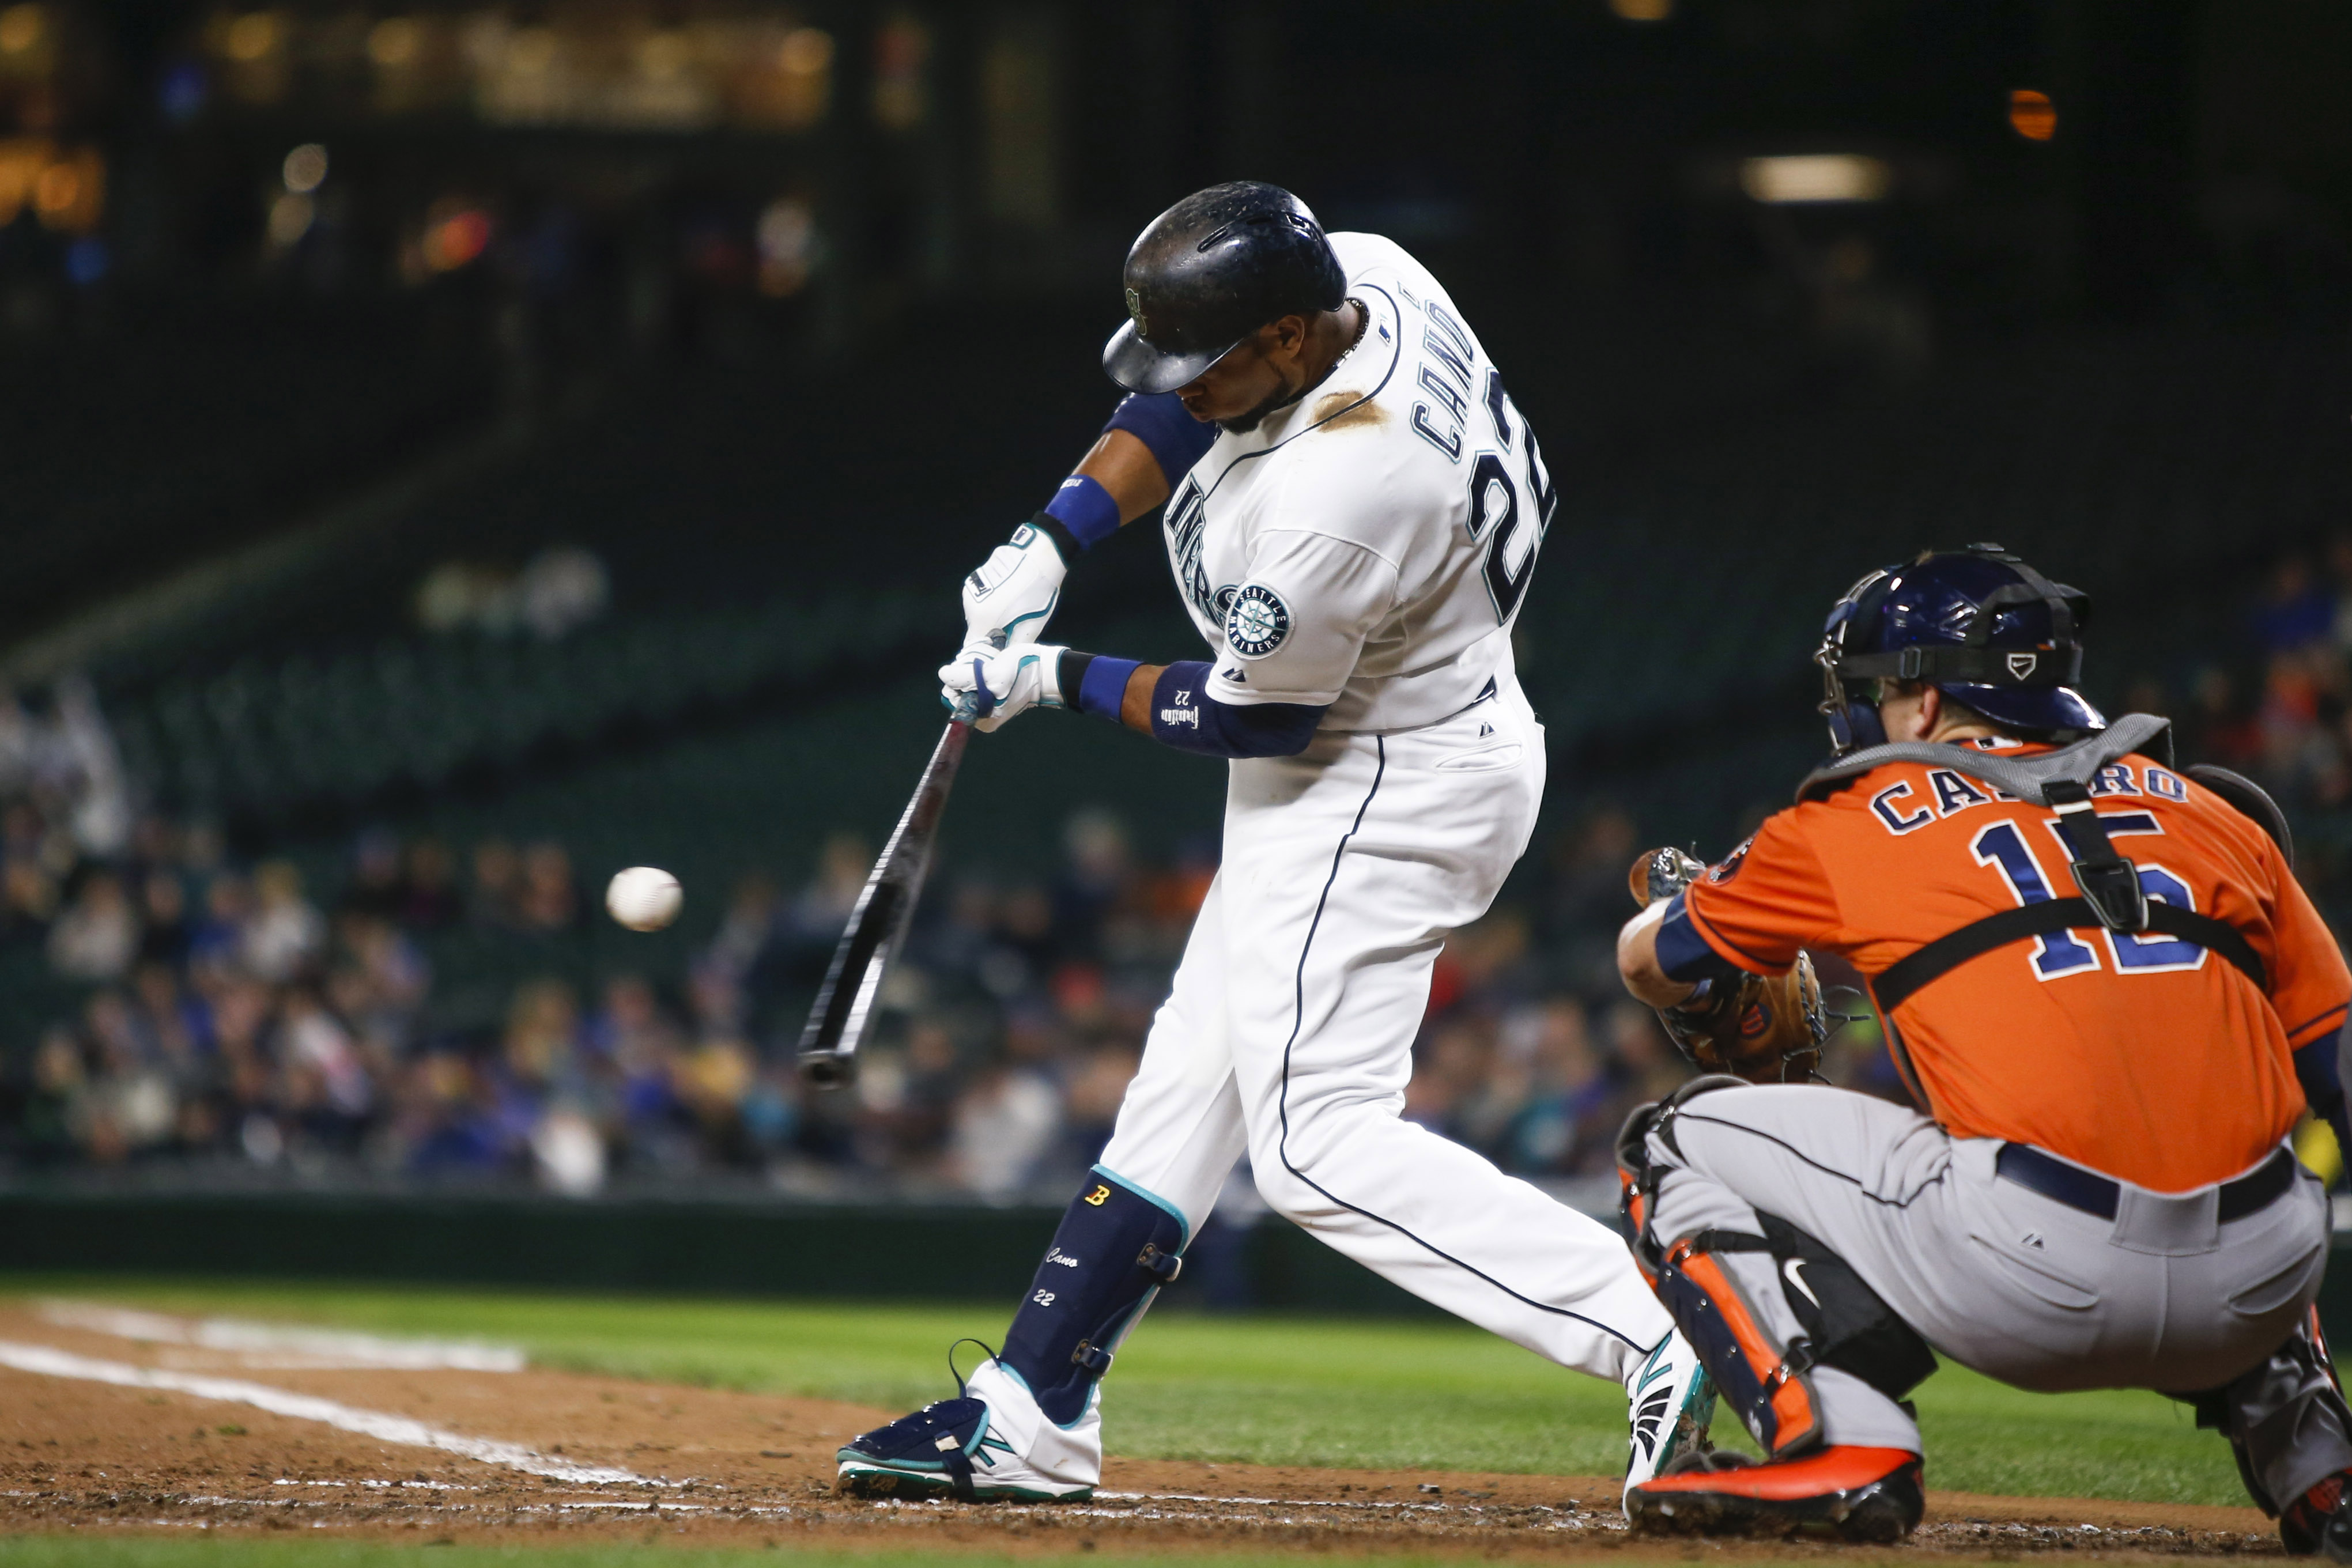 Robinson Cano showed signs that he isn't done just yet. Could even more be in store for 2016?